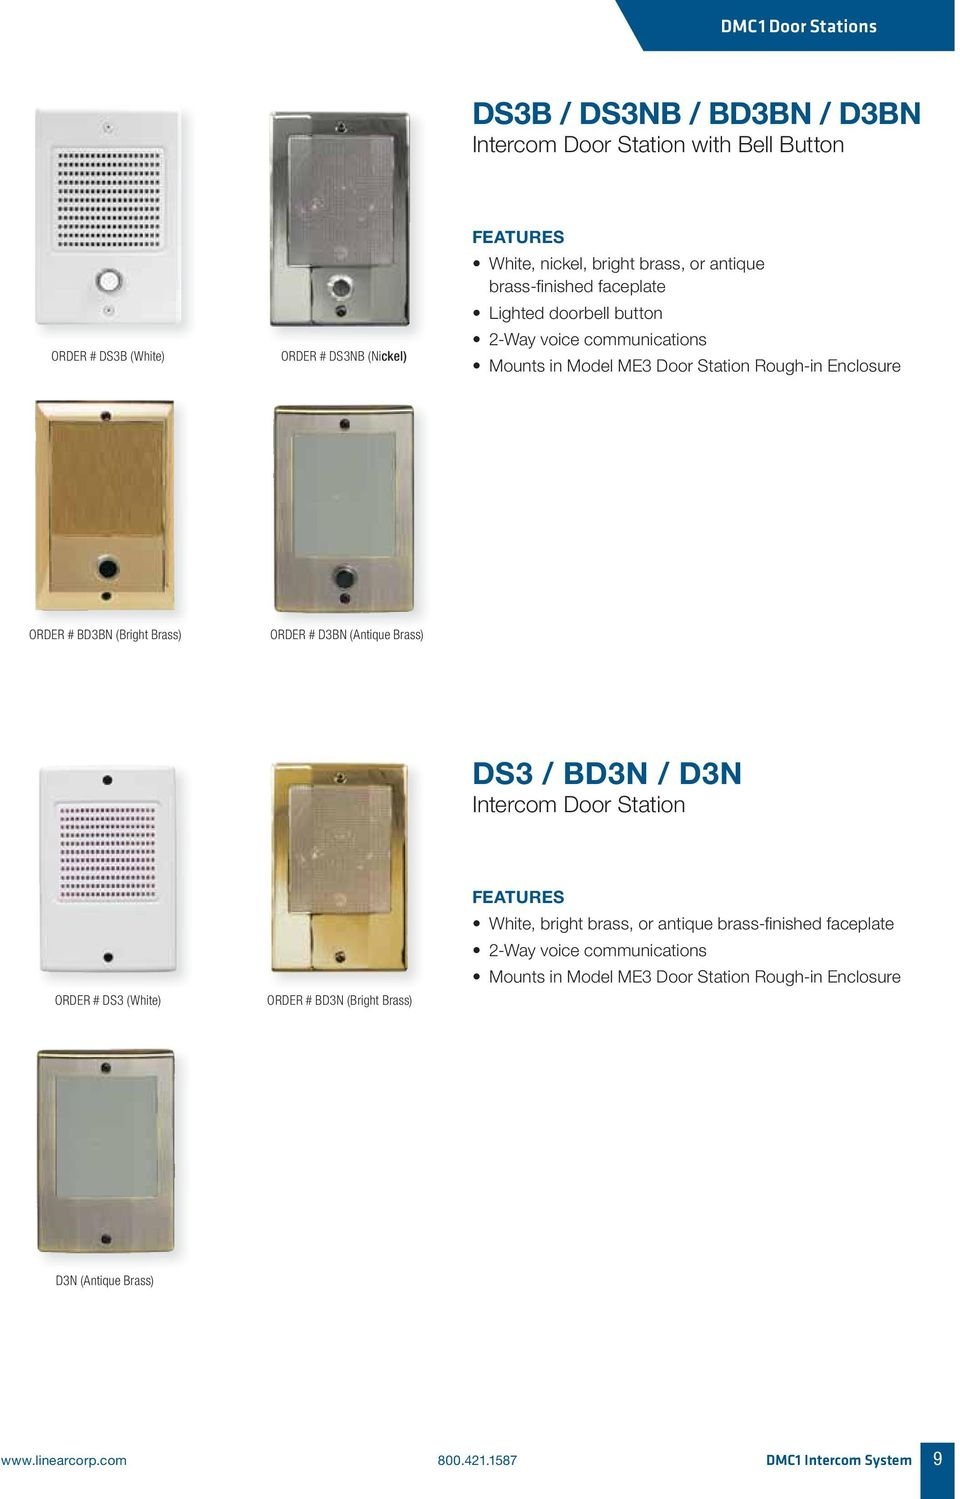 Brass) ORDER # D3BN (Antique Brass) DS3 / BD3N / D3N Intercom Door Station ORDER # DS3 (White) ORDER # BD3N (Bright Brass) White, bright brass, or antique brass-fi